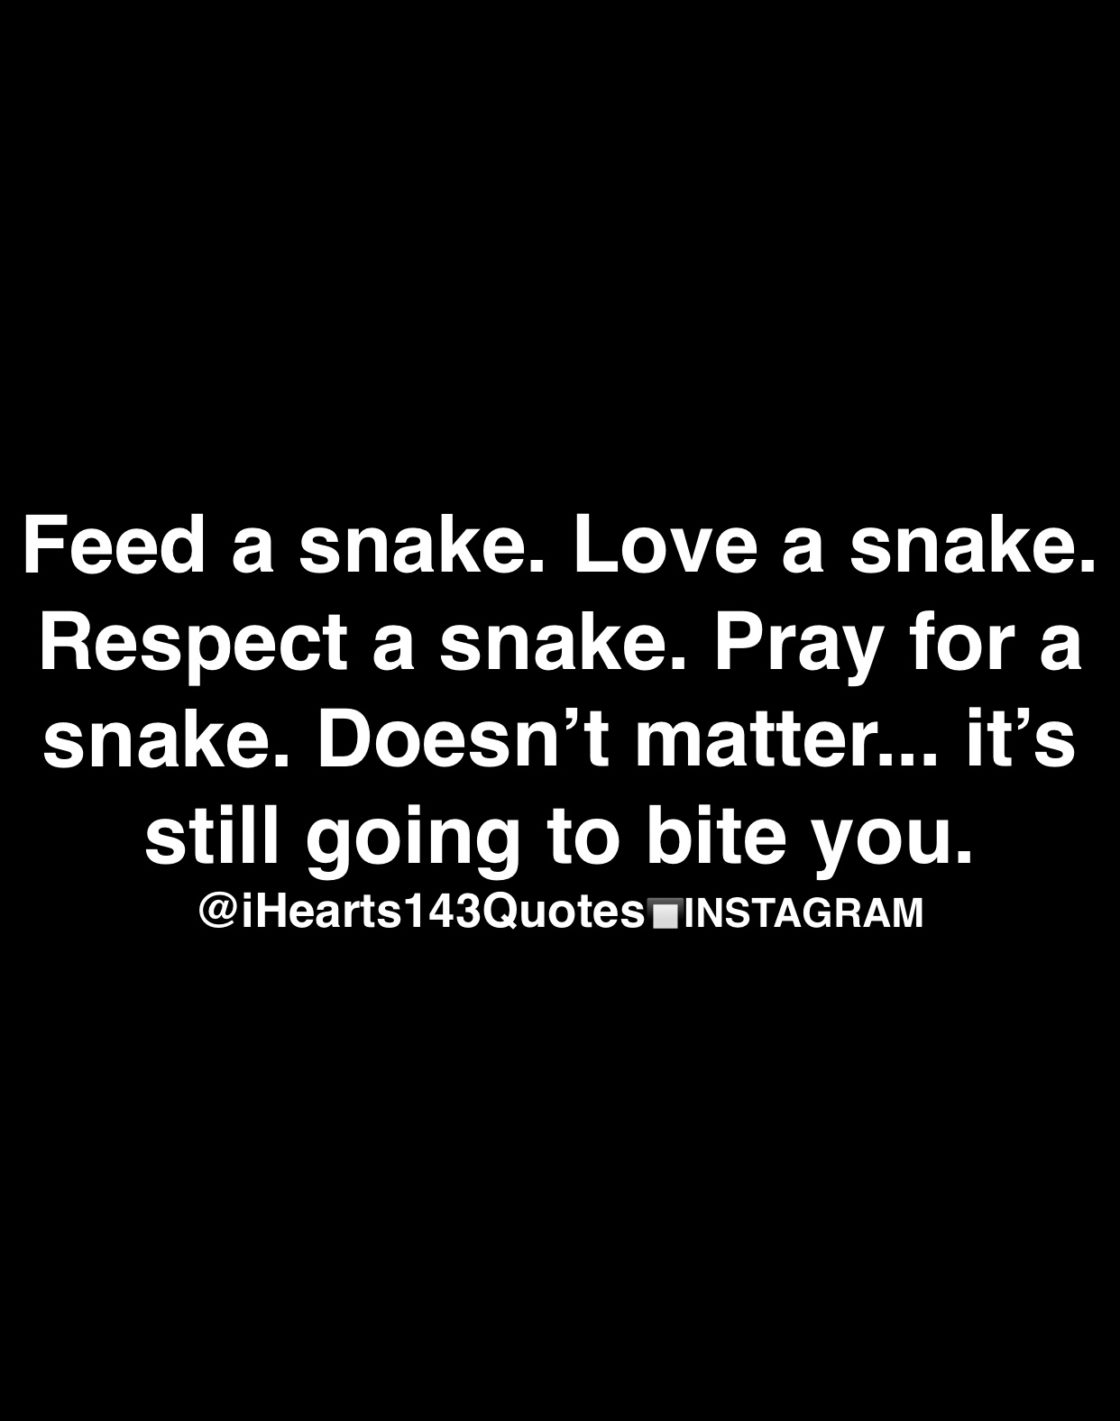 Snake Quotes Daily Motivational Quotes – iHearts143Quotes Snake Quotes